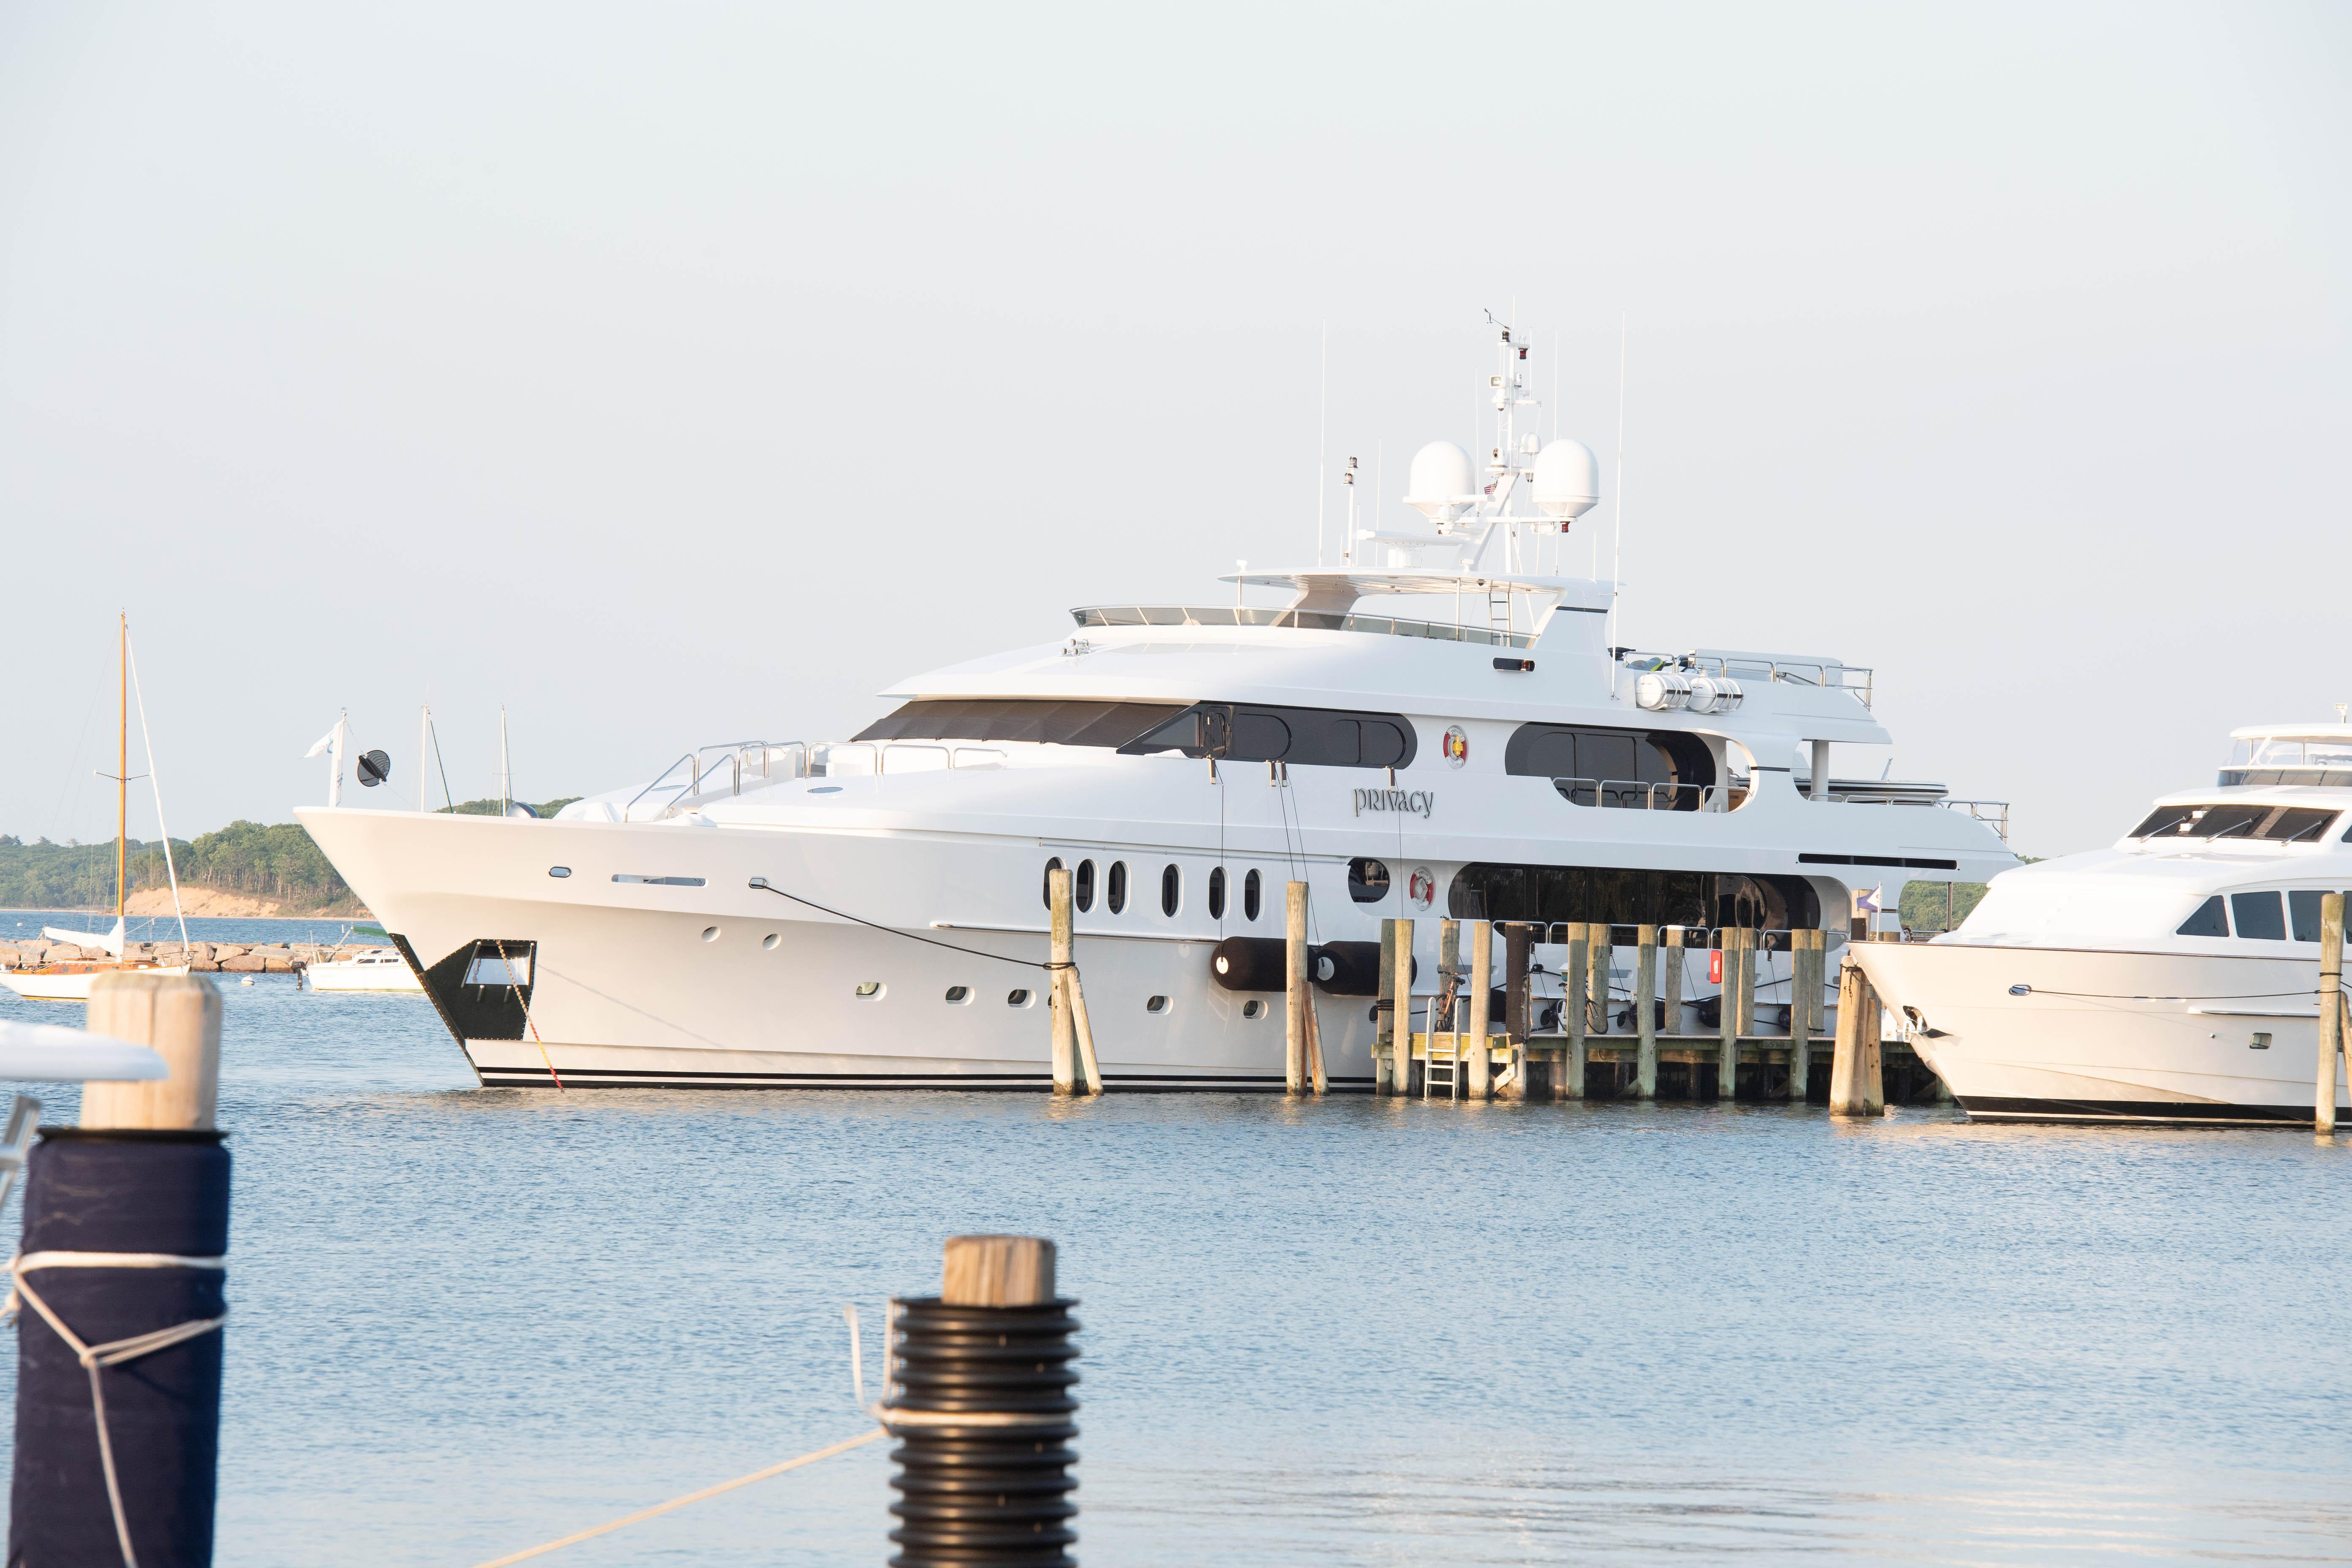 Woods' £15million yacht Privacy docked in Sag Harbour, New York